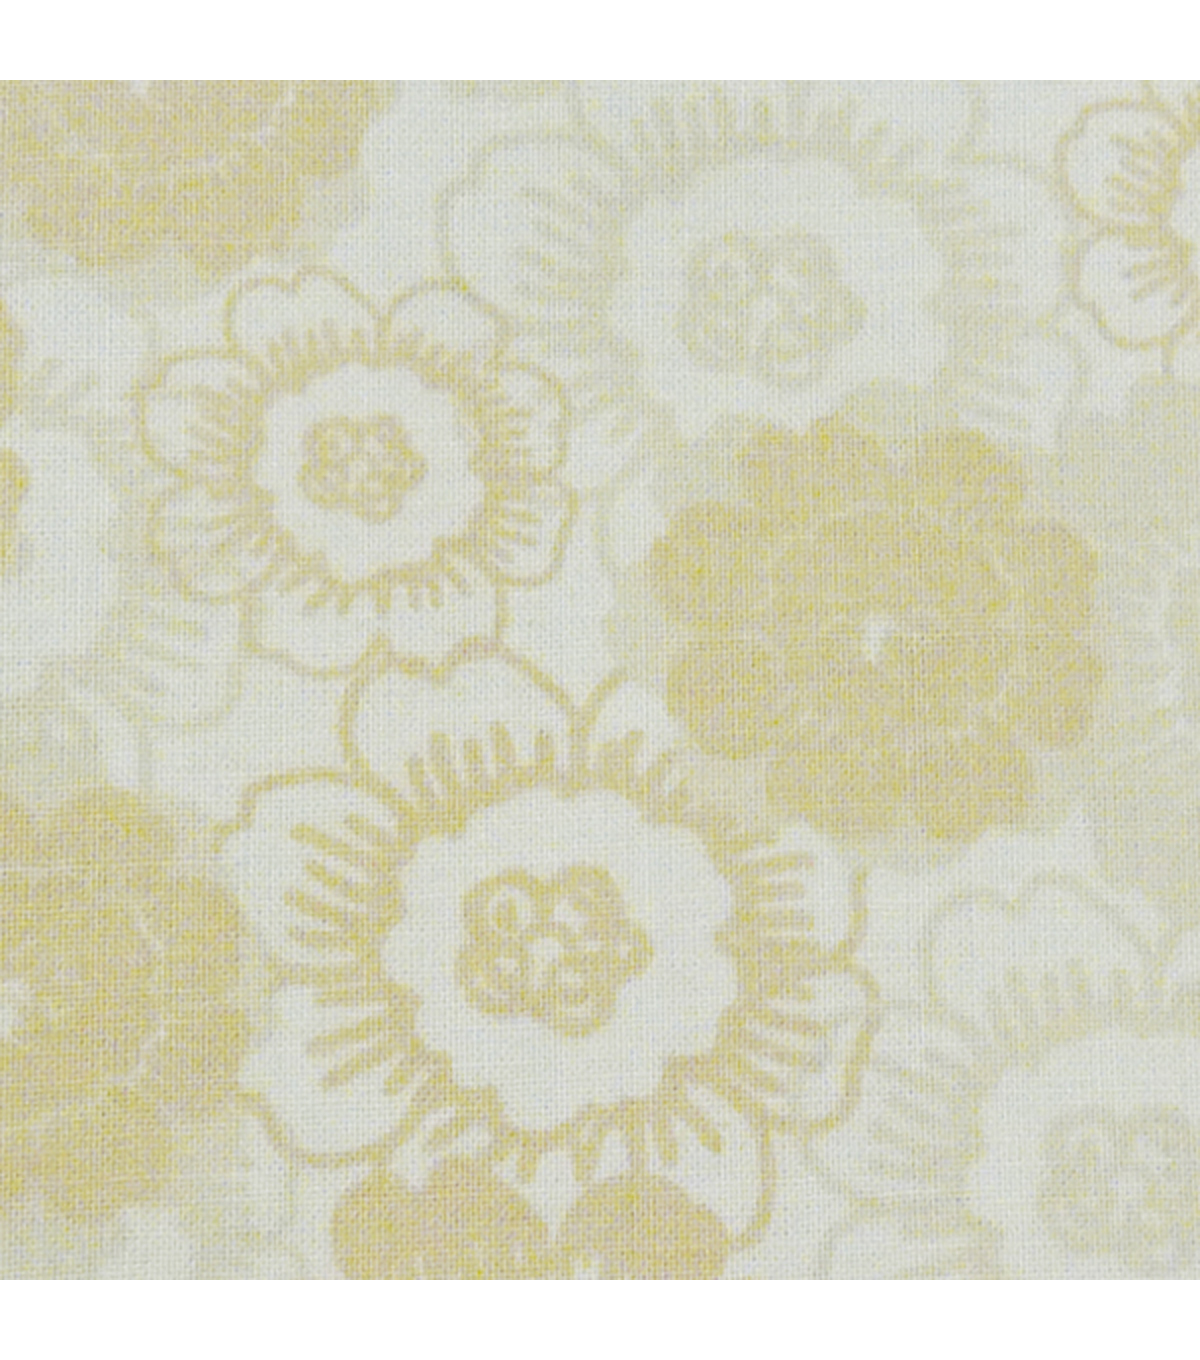 Fabric Palette 1/4yd Pre-cut Cotton Fabric-Yellow Vintage Floral